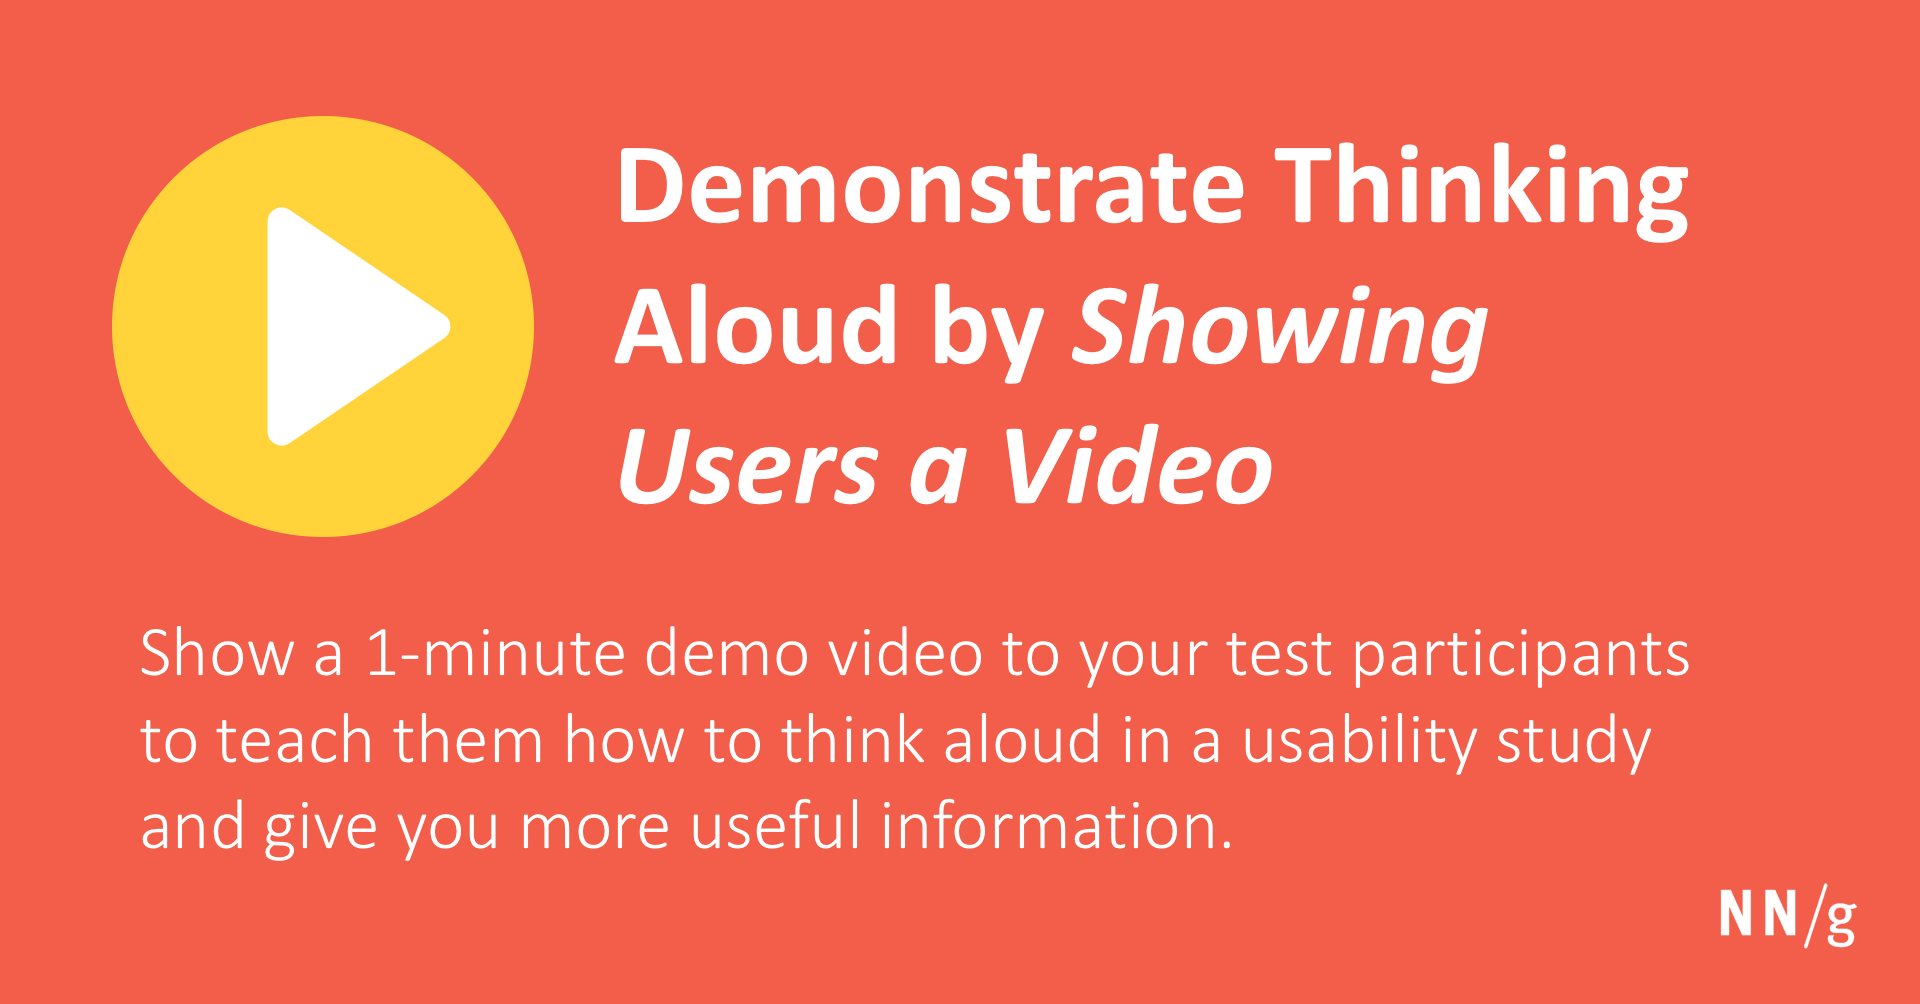 Demonstrate Thinking Aloud by Showing Users a Video